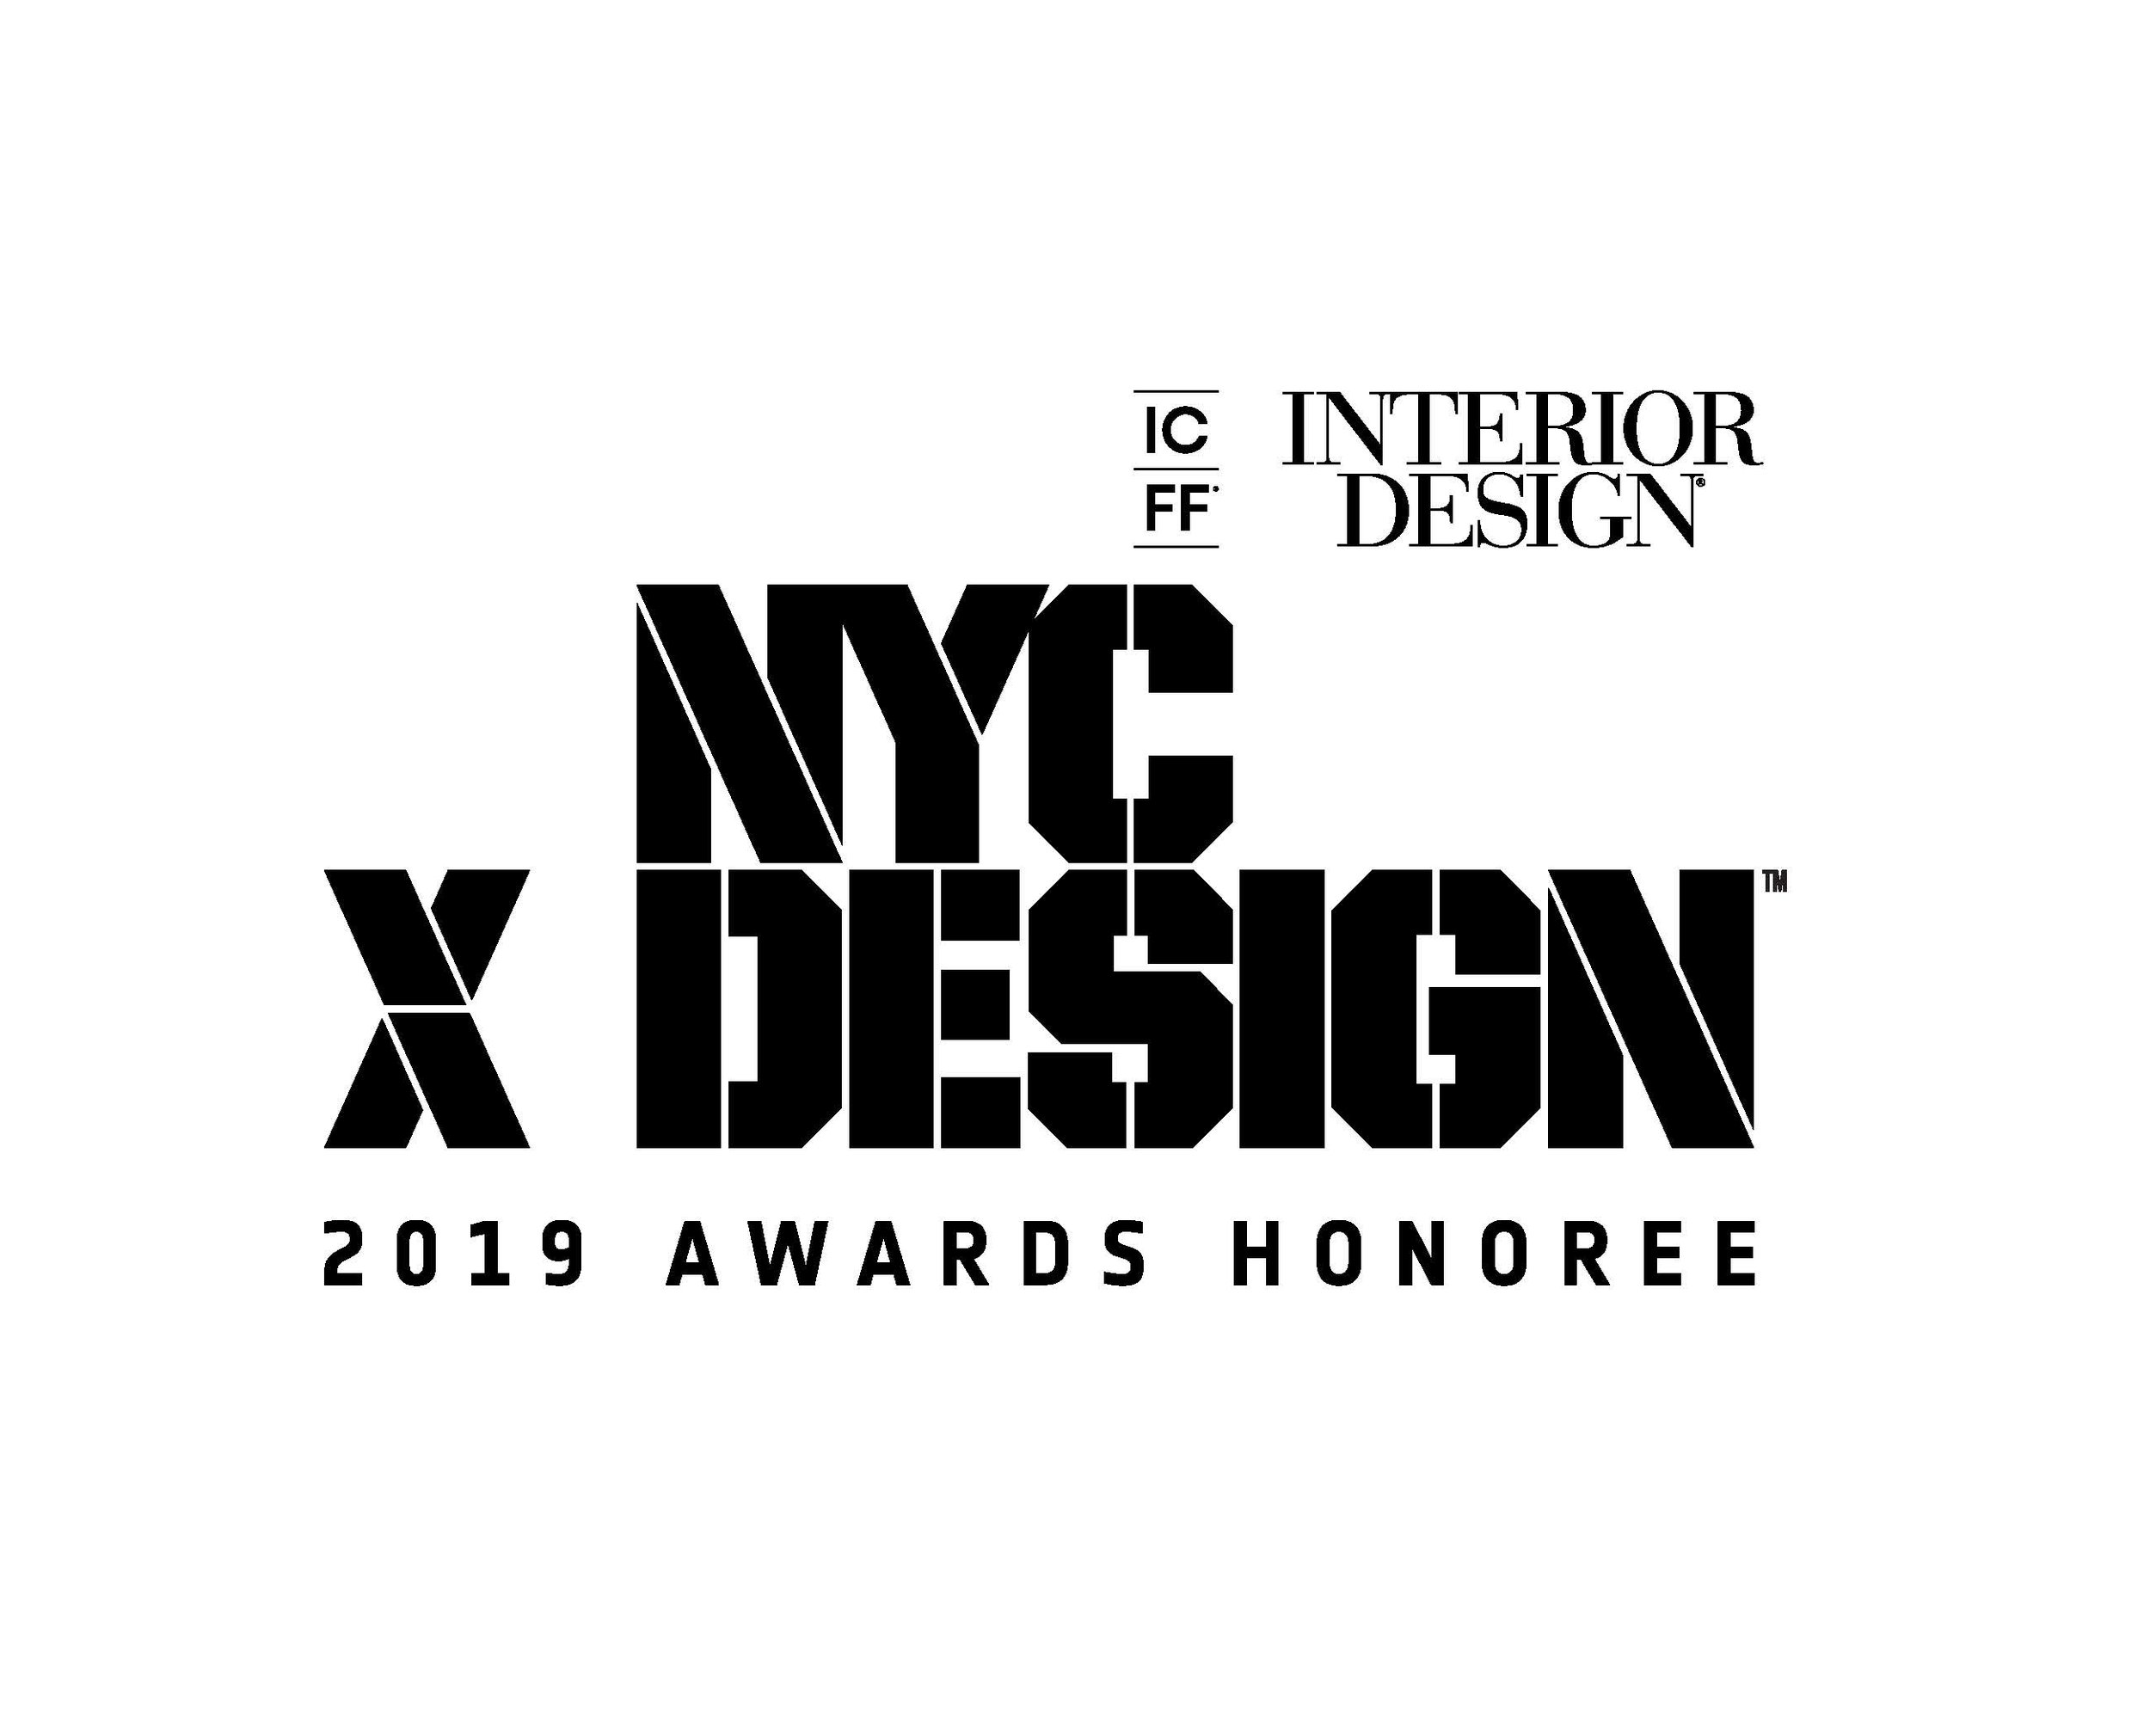 Parsley Health and The Wing Soho won honoree awards at NYC x Design